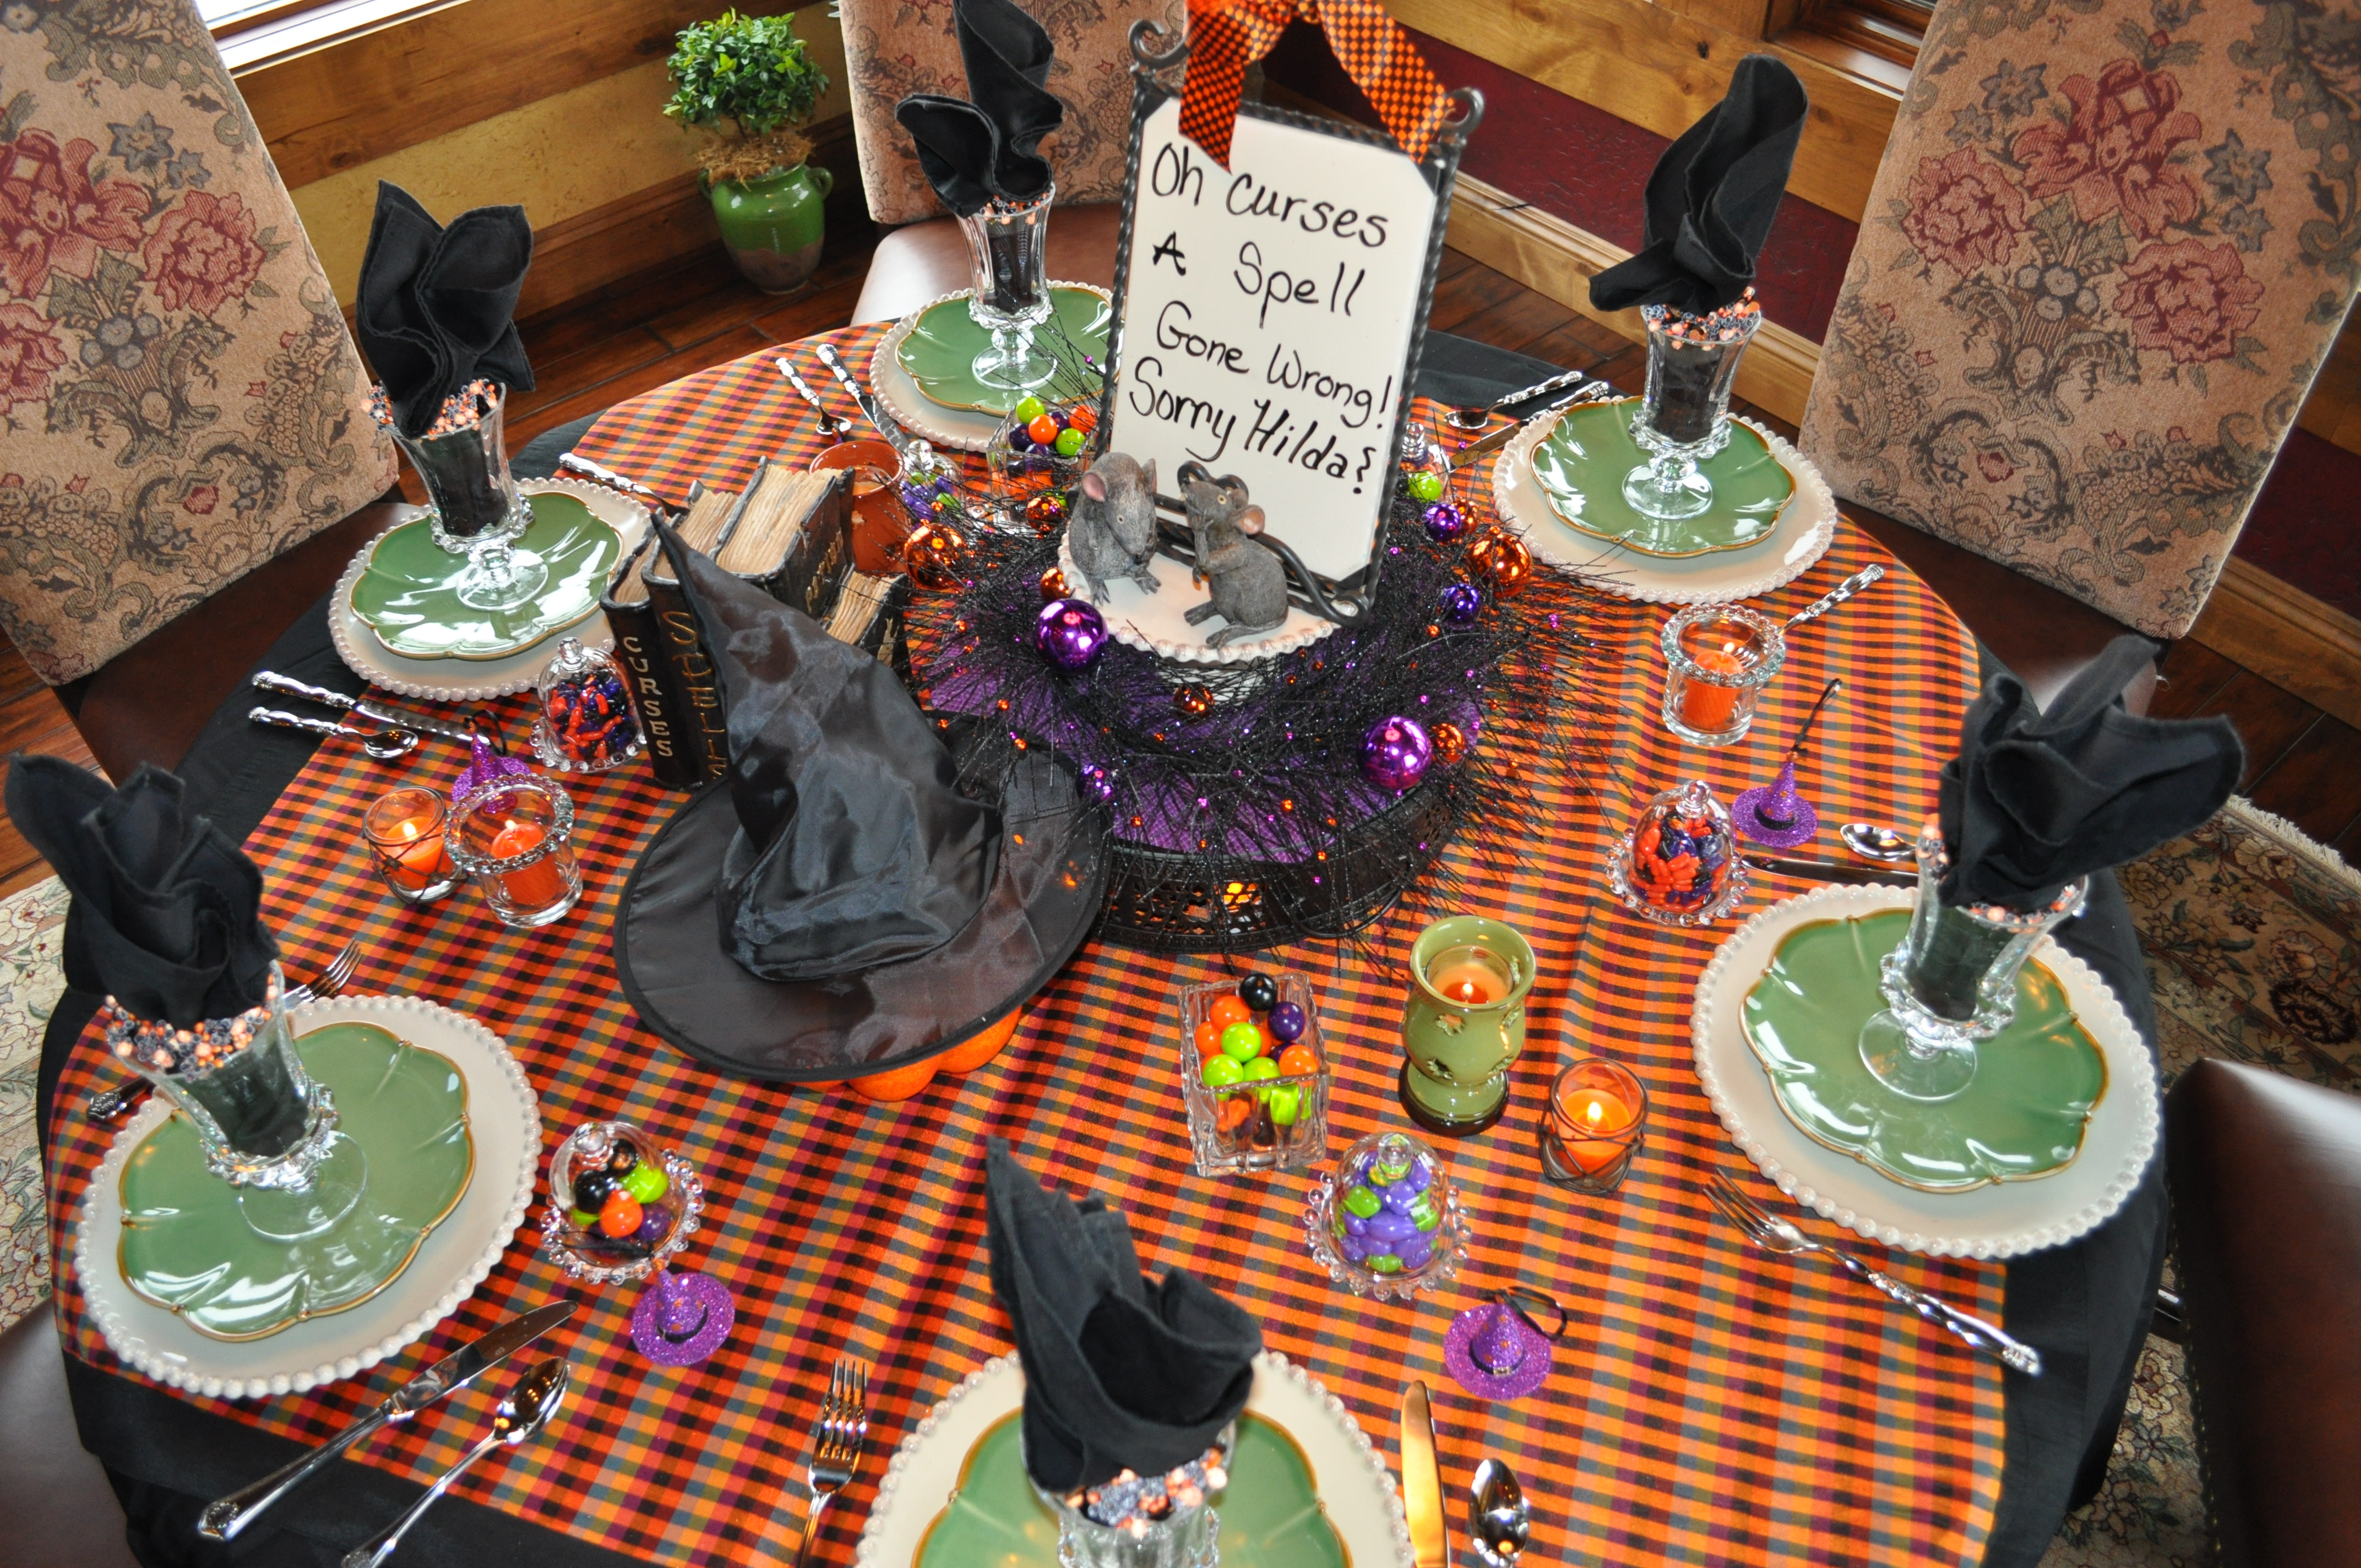 Halloween tablescapes - The Two Little Mice Inspired Me To Create This Hocus Pocus Tablescapes When I First Saw The Little Mice At Kneaders A Local Eatery The Movie Cinderella